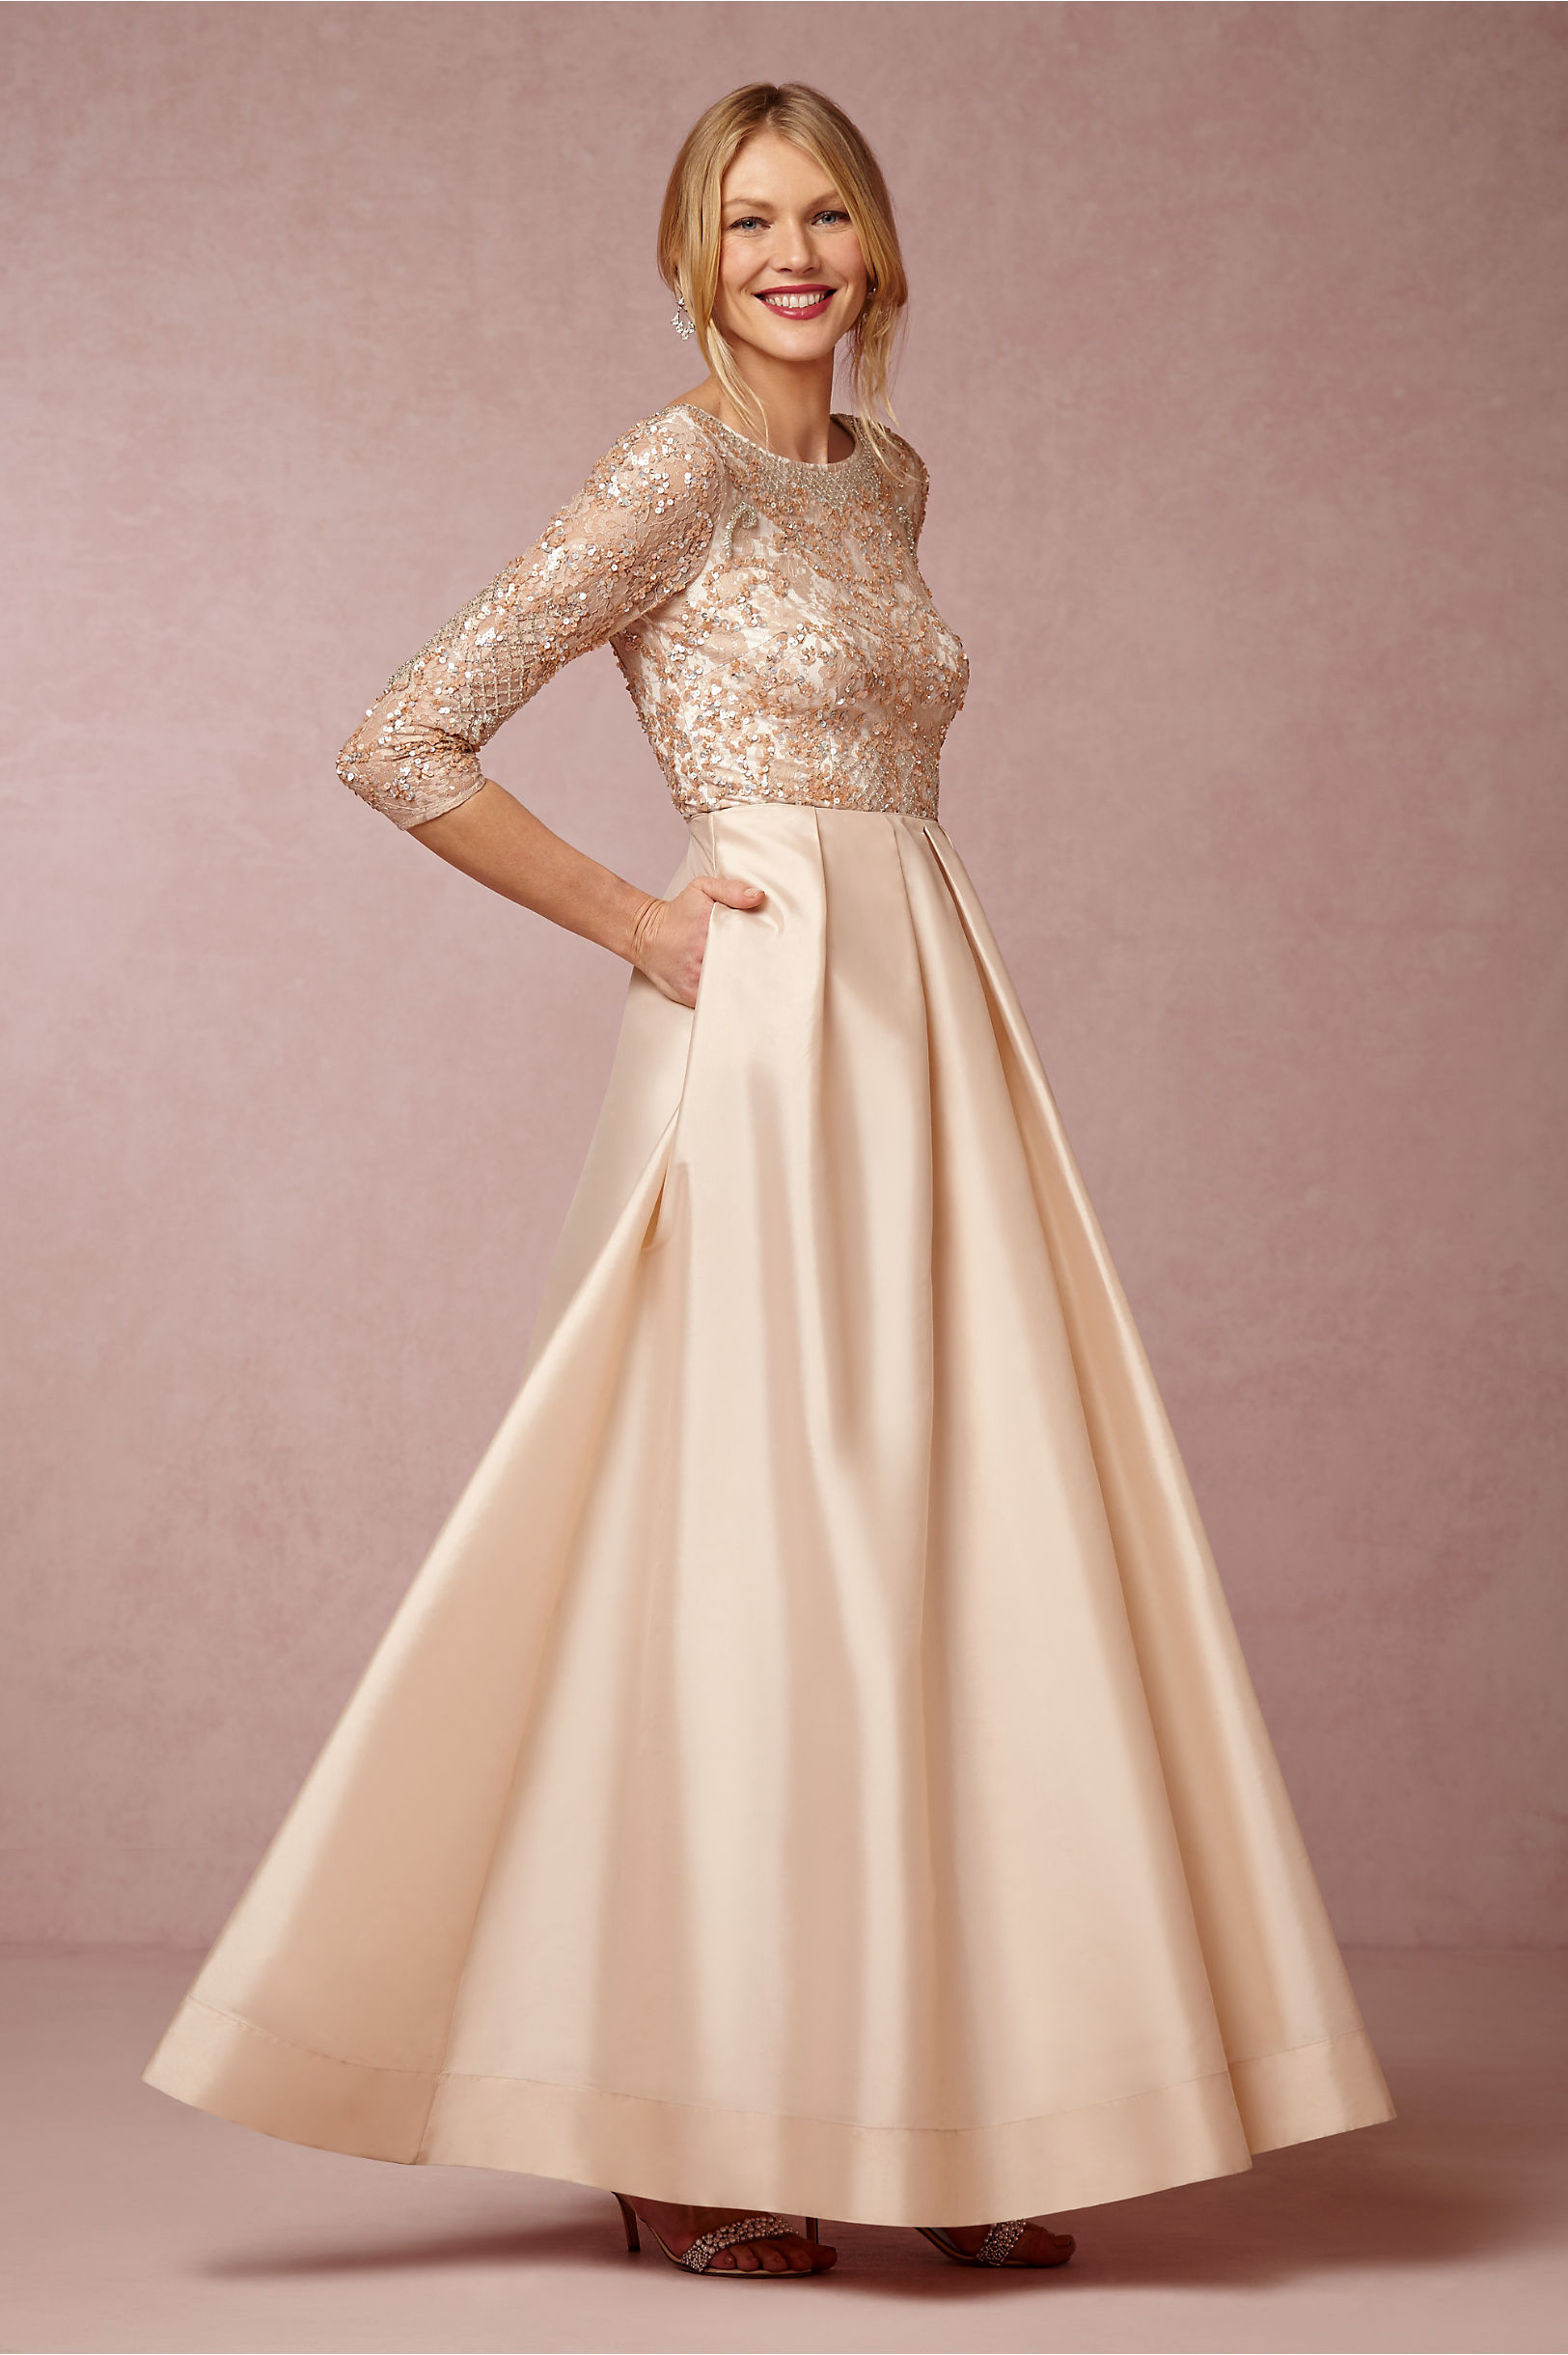 Viola Dress in Occasion Dresses | BHLDN